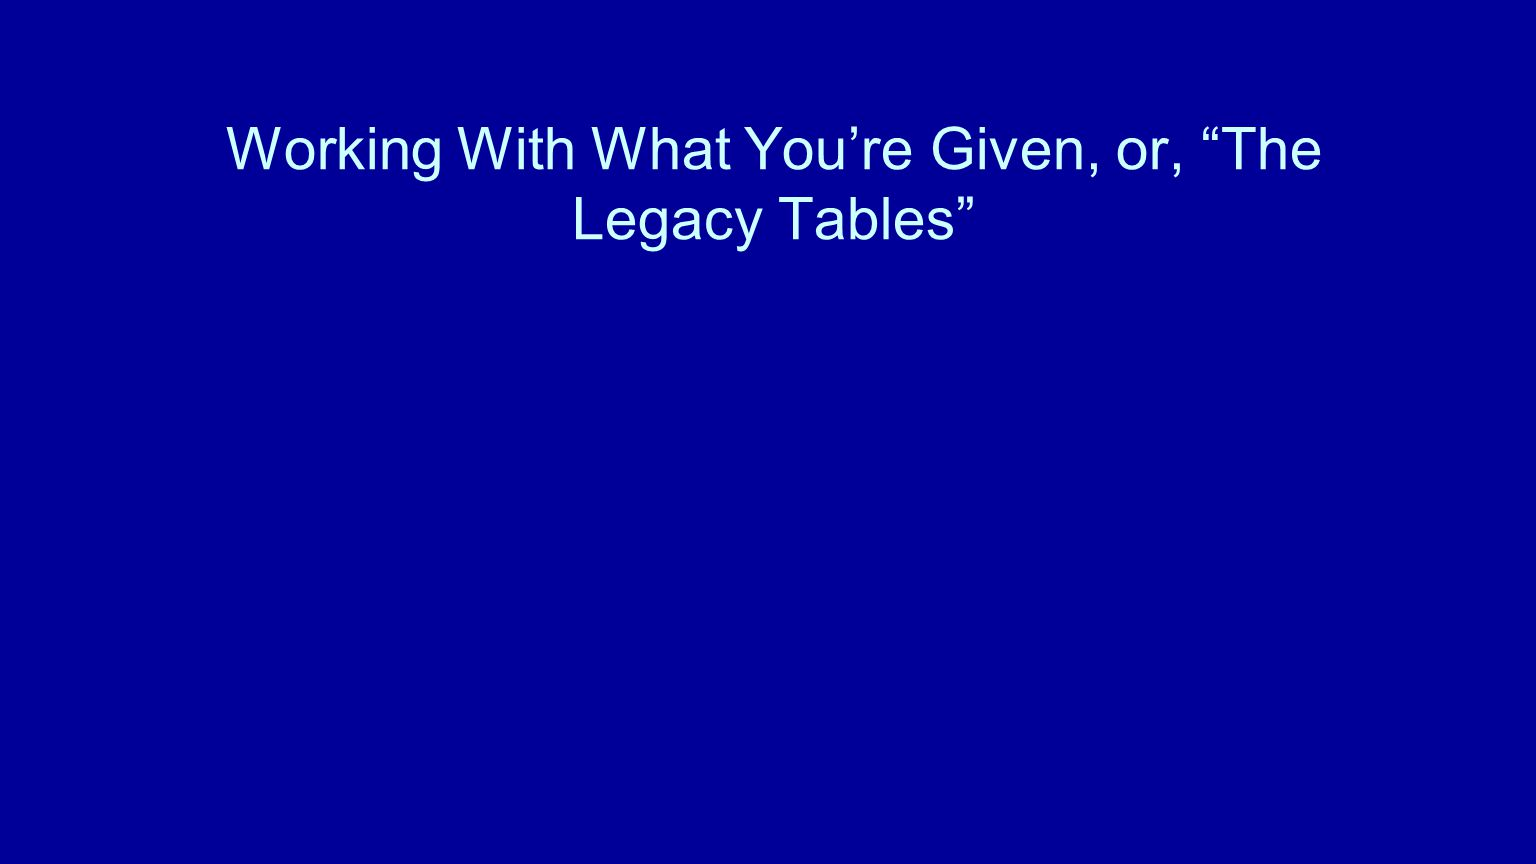 Working With What You're Given, or, The Legacy Tables